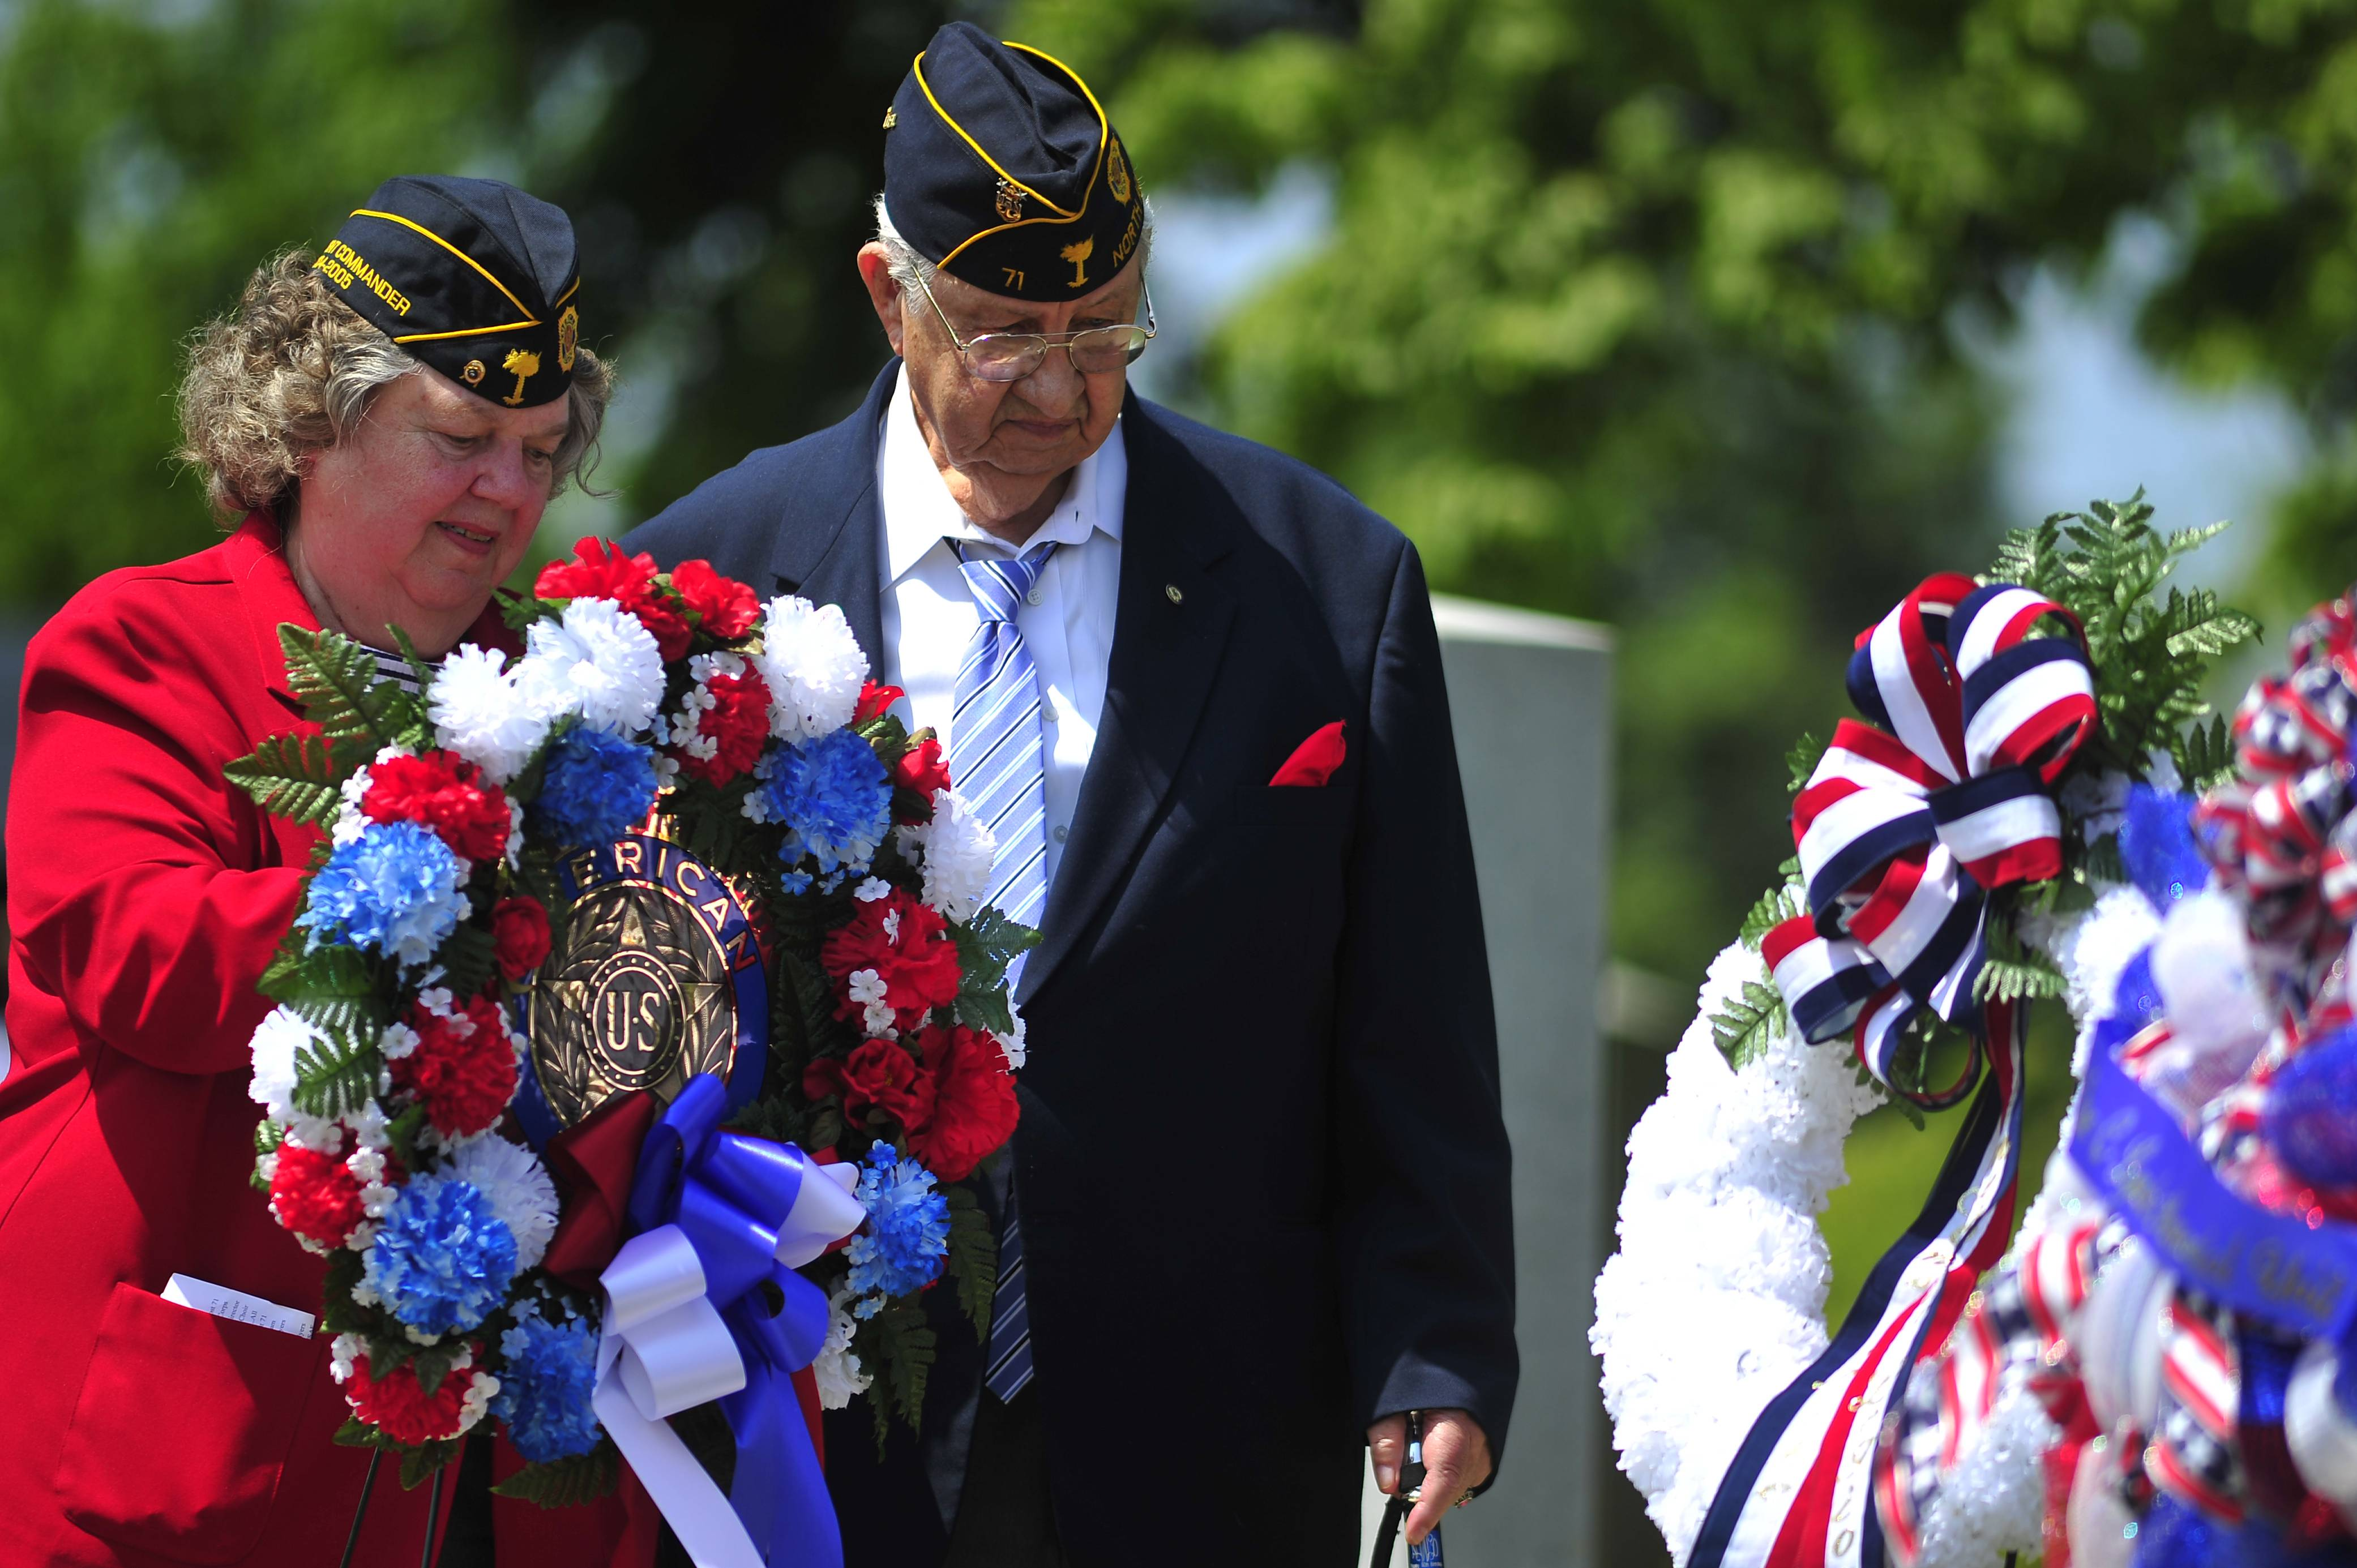 Norma and Norman Walker present a wreath for American Legion Auxiliary Unit 71 and American Legion Post 71 during the Memorial Day service presented for the City of North Augusta by American Legion Post 71 in North Augusta, S.C., on Monday, May 26, 2014.